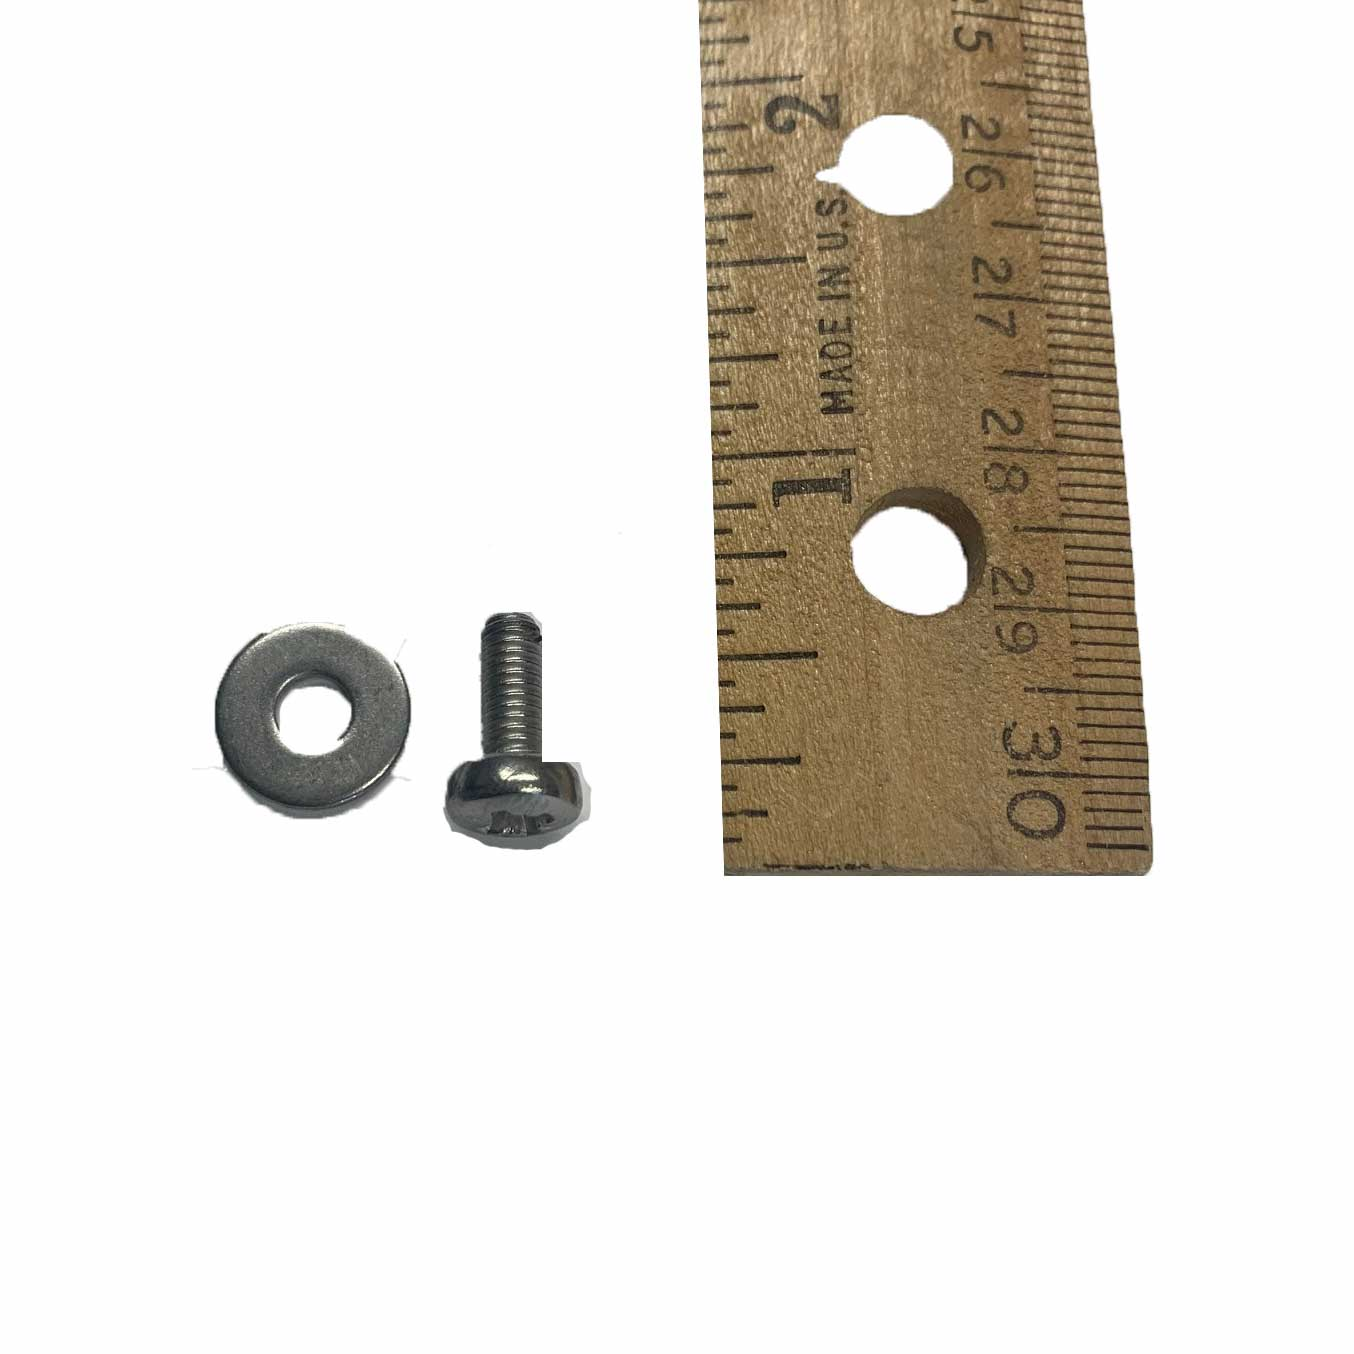 Bolt and Washer for 8 Tooth Gearwheel